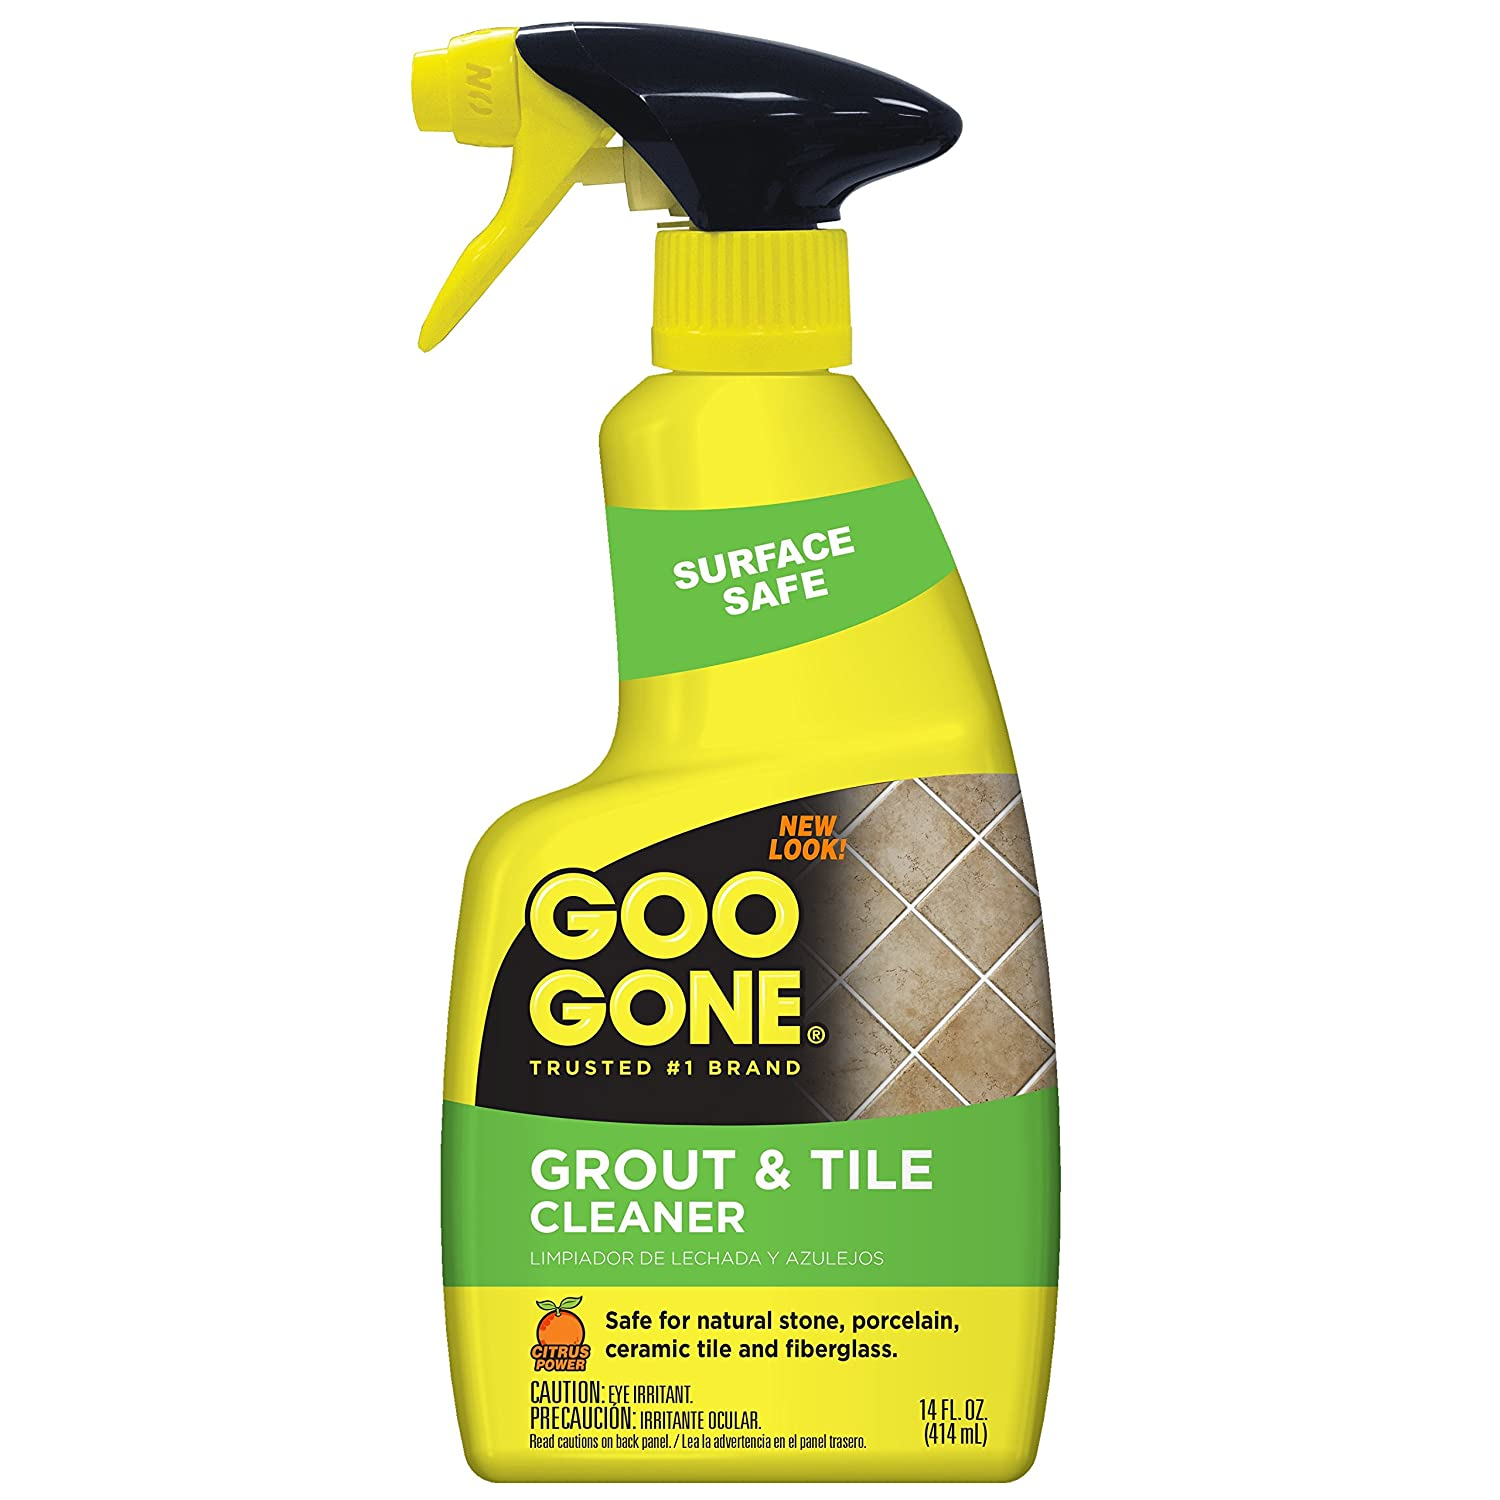 Goo Gone Grout And Tile Cleaner 14 Ounce Best Grout And Tile